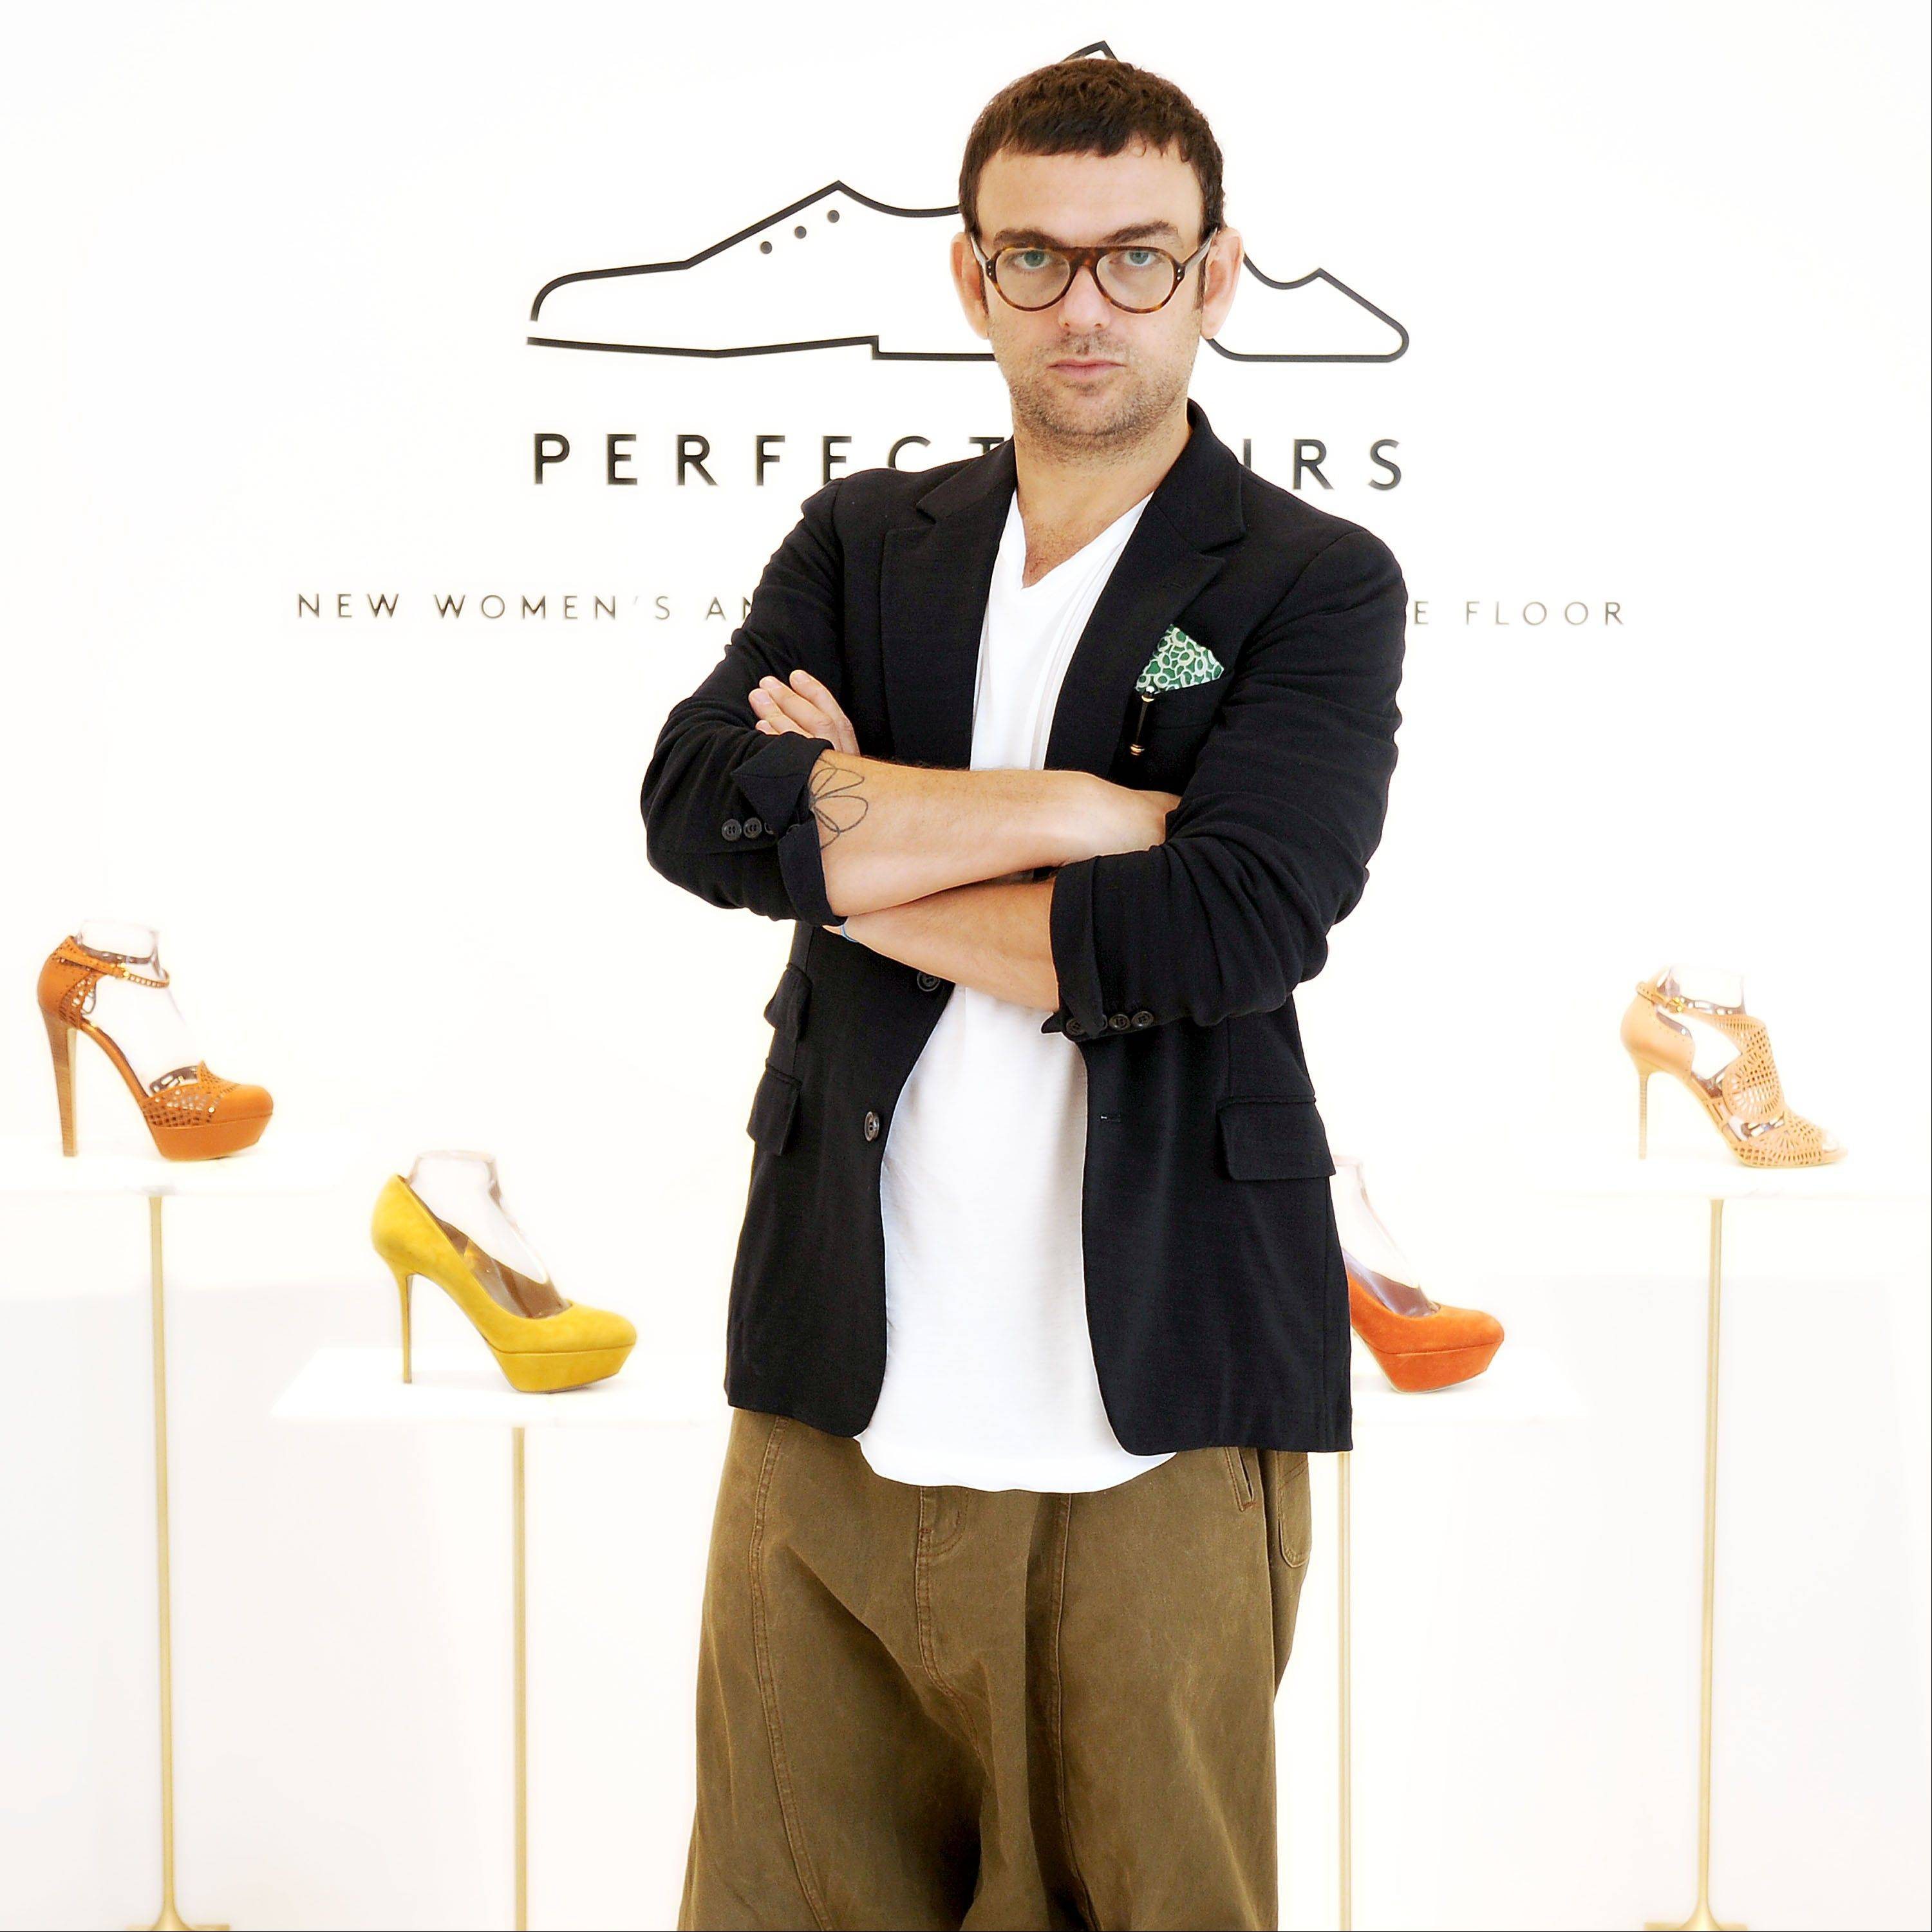 Francesco Russo, creative director for Sergio Rossi, poses in front of his fall collection at Barneys New York on July 18. Russo is flattered by the celebrities such as Anne Hathaway, Diane Kruger and Michelle Pfeiffer who wear Sergio Rossi on the red carpet, but he�s in it more for the love affair he, via shoes and handbags, will make with women of all ages and lifestyles.